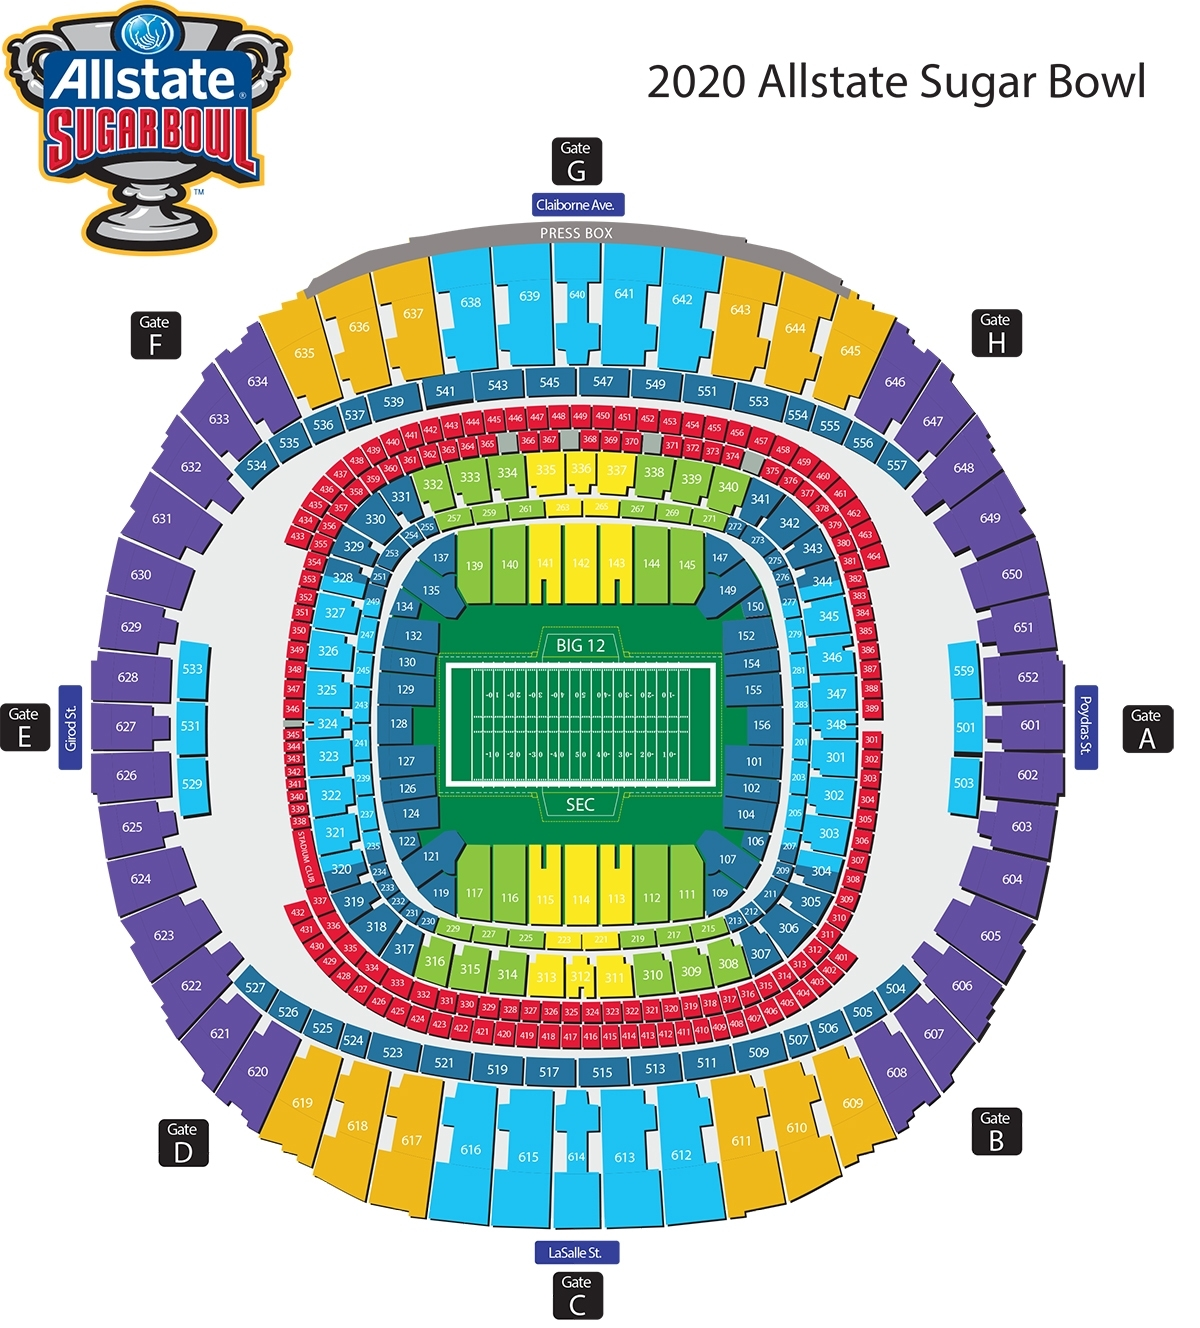 Seating Diagram - Official Site Of The Allstate Sugar Bowl in Super Bowl Stadium 2019 Seating Capacity